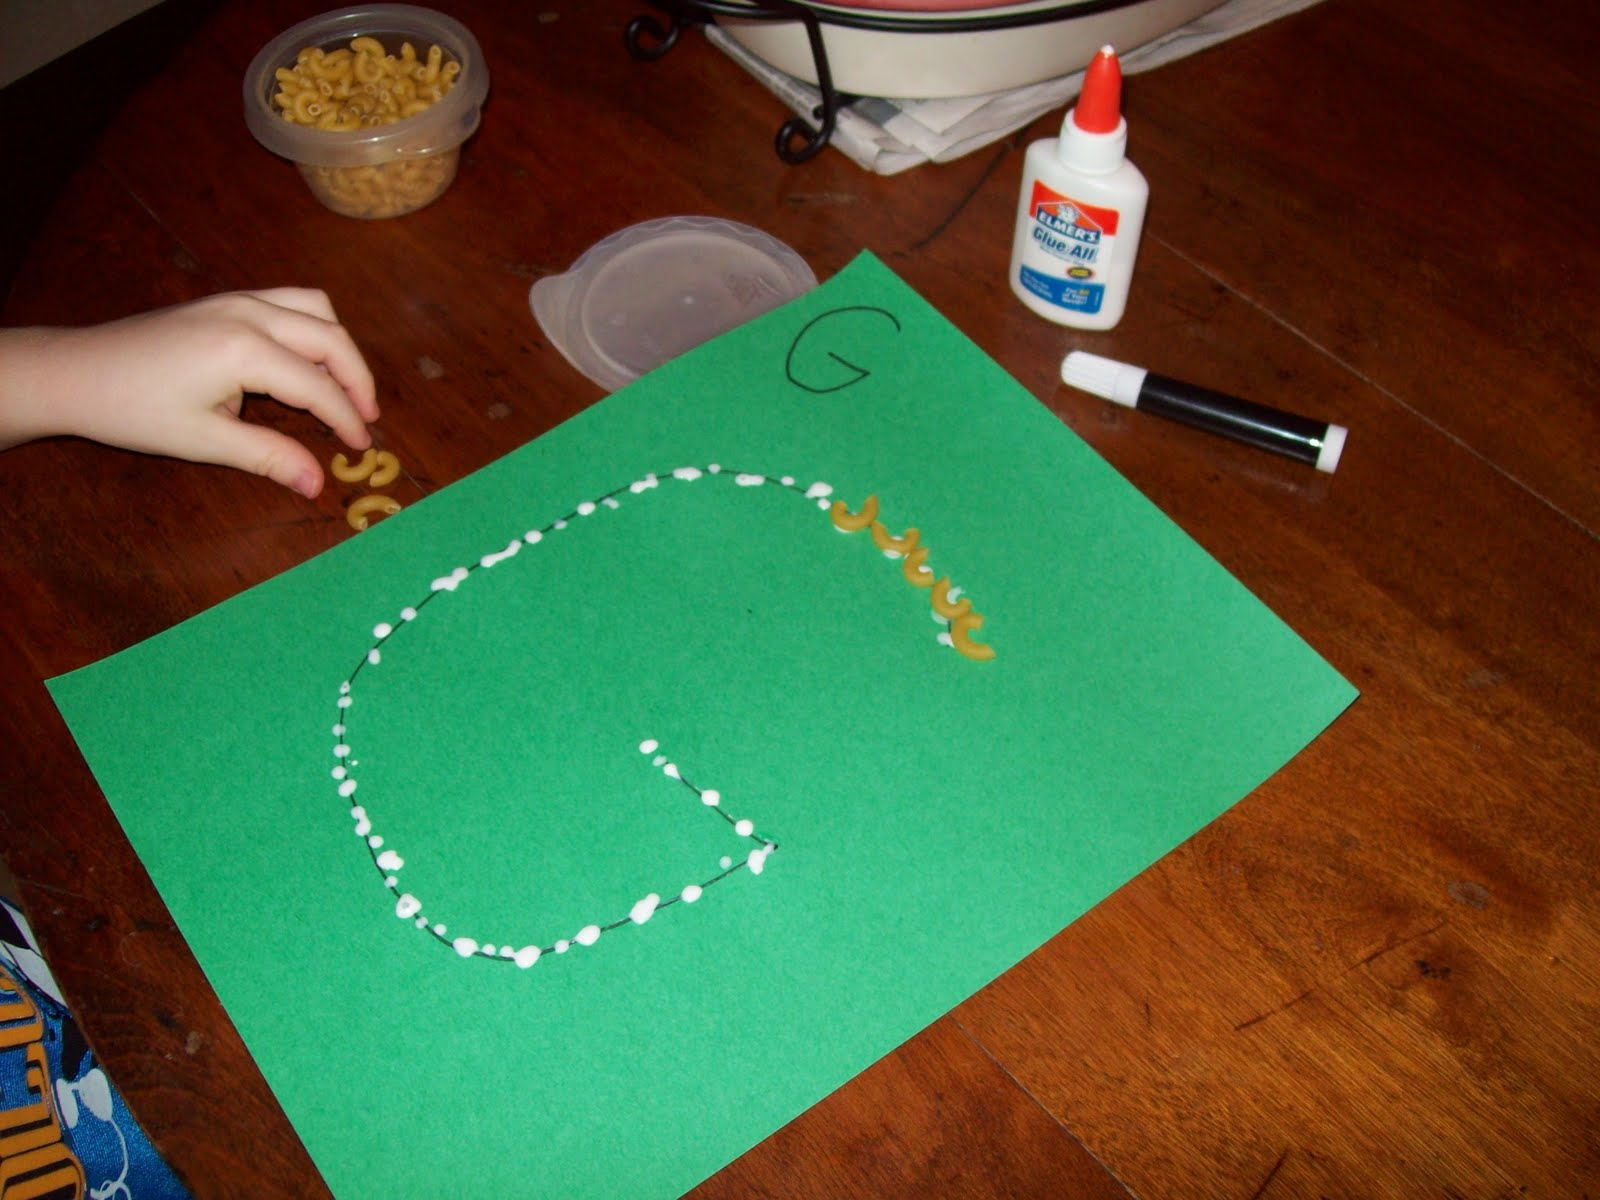 Learning The Letter G And Macaroni Art